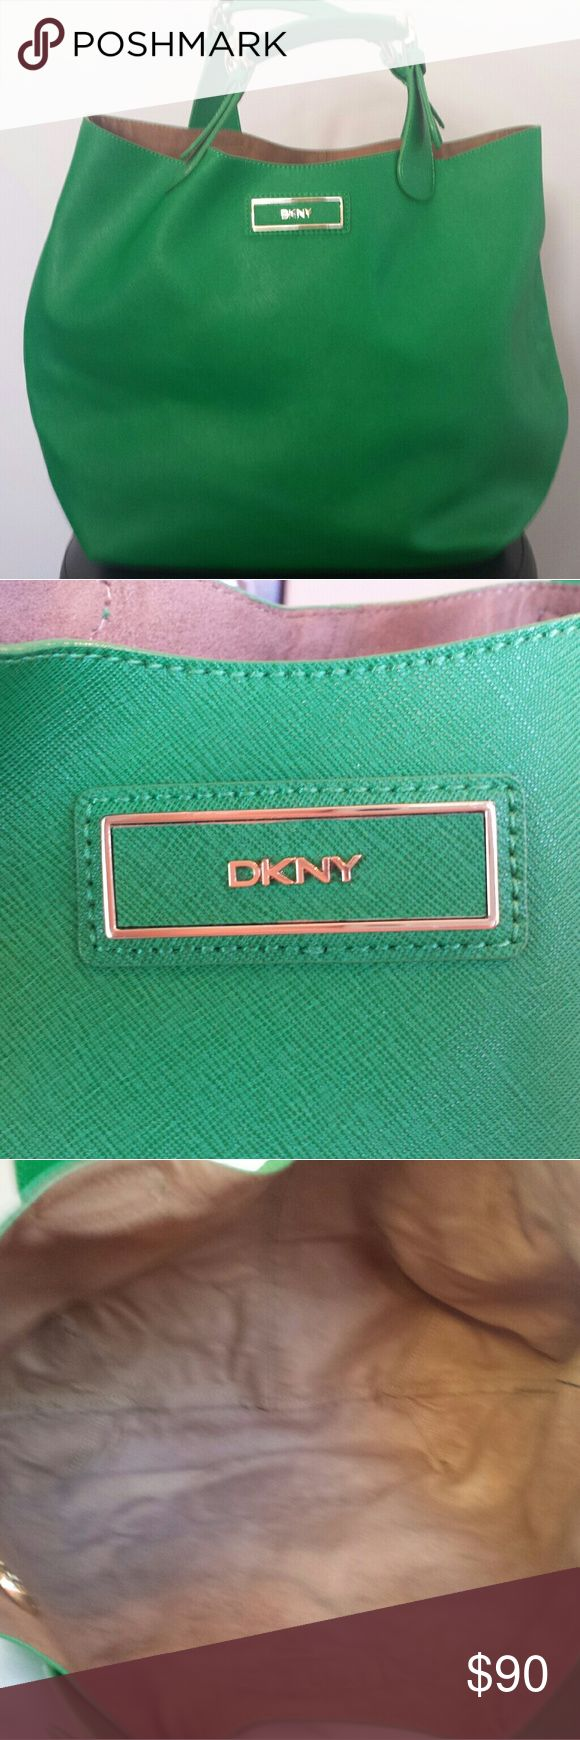 """DKNY Handbag HUGE DKNY in a splendid spring green. This bag has so much going on! 100% Genuine Saffiano Leather, the inside is unlined and finished in a beautiful tan suede.  Detachable insert to hold belongs securely, detachable shoulder strap and a lovely DKNY key fob. Measurements are 18"""" x 13""""  Bright and fresh - just in time for spring!   Unused and without tags. Has been sitting in my closet for a year so price is reflective. Bought it last spring and it is way to large for me. DKNY…"""